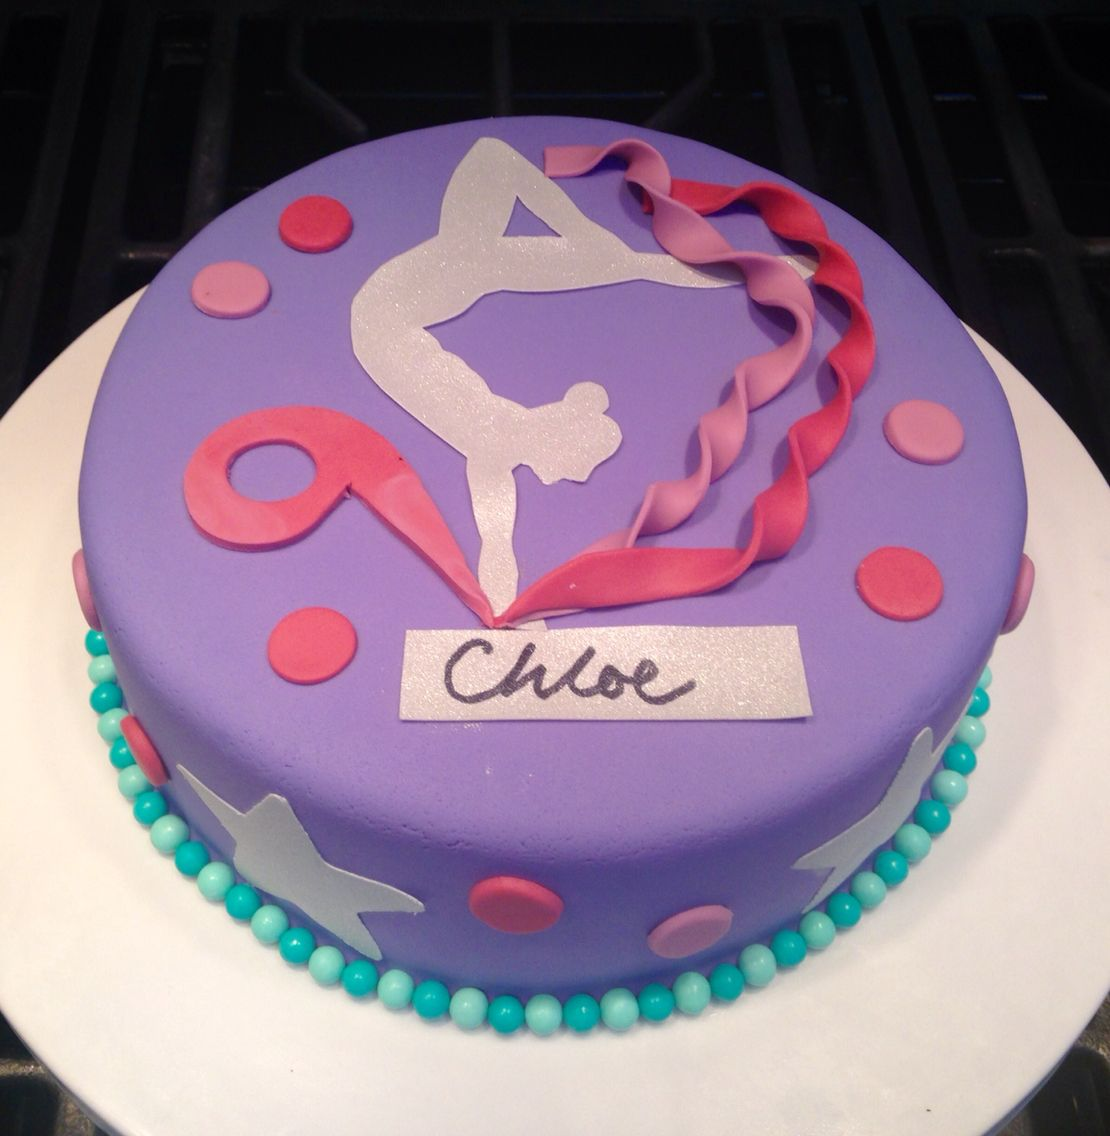 Gymnastic birthday cake Cakes cakes and more cakes Pinterest